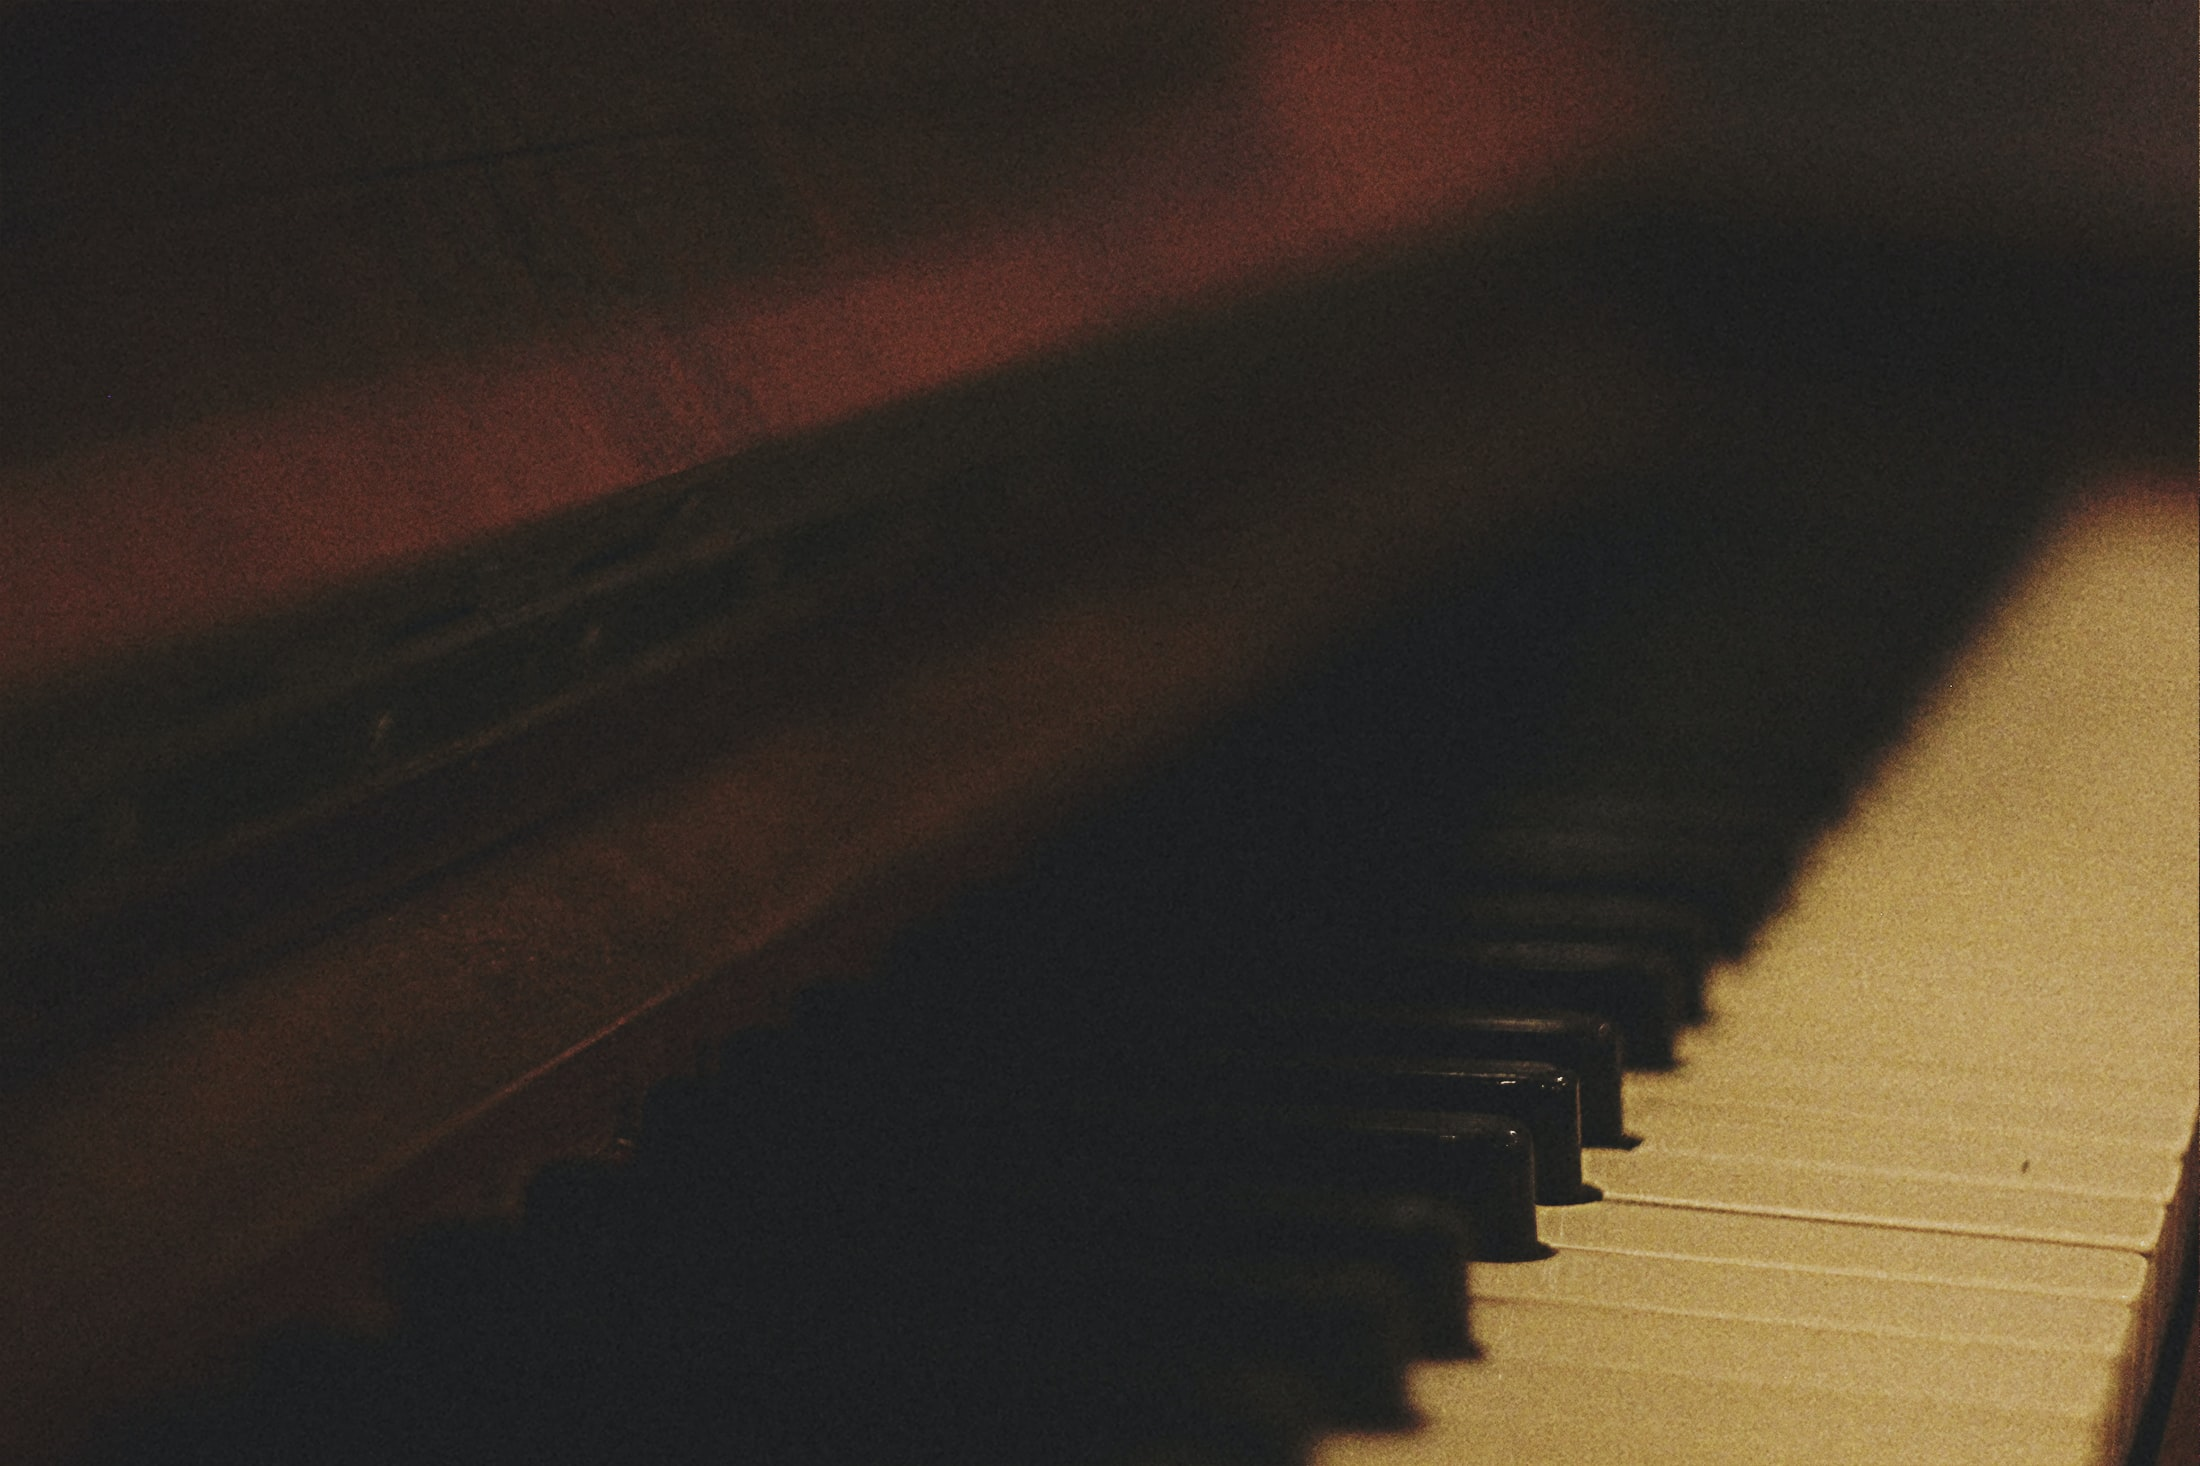 A fuzzy shot of a piano keyboard